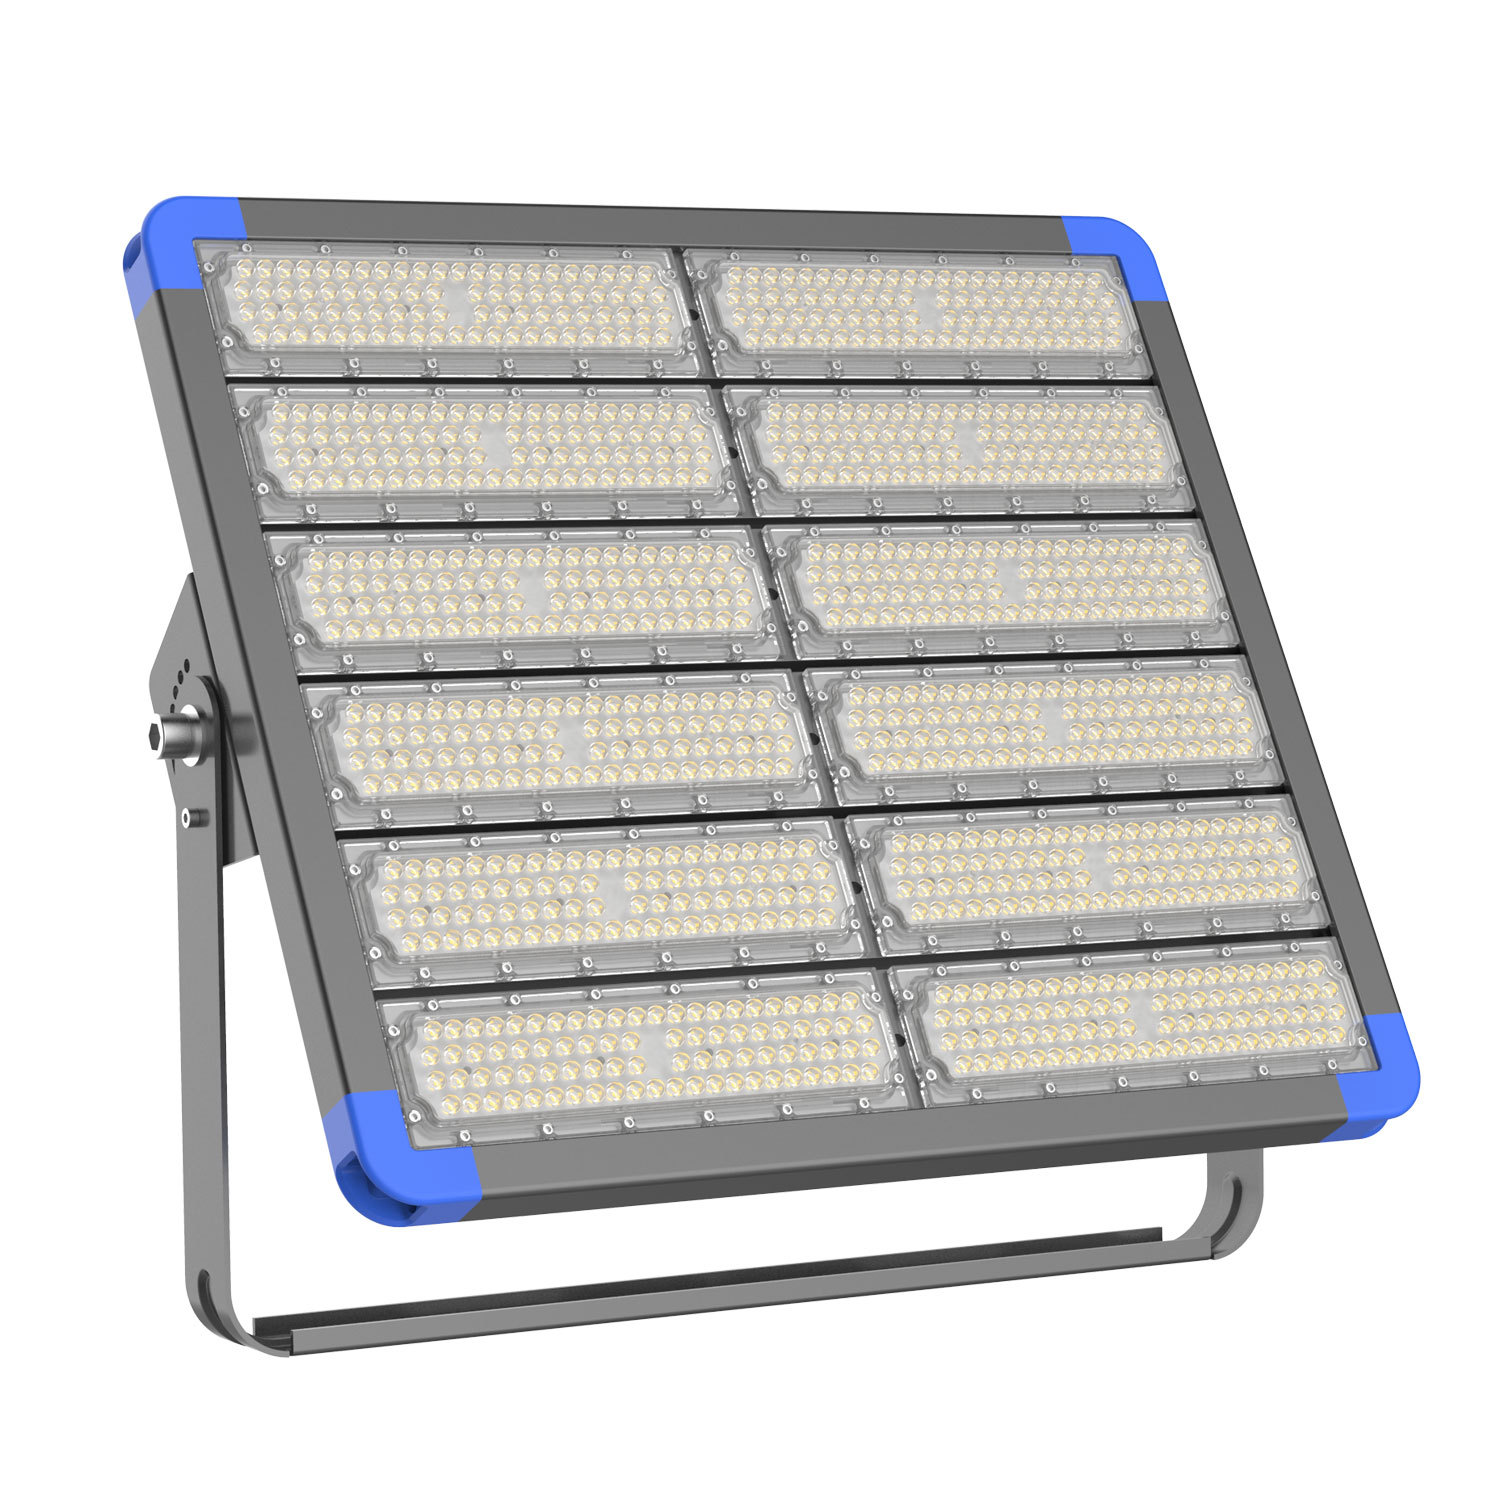 IP66 High Power 600W CRI80 LED Modular Tunnel Light With Bracket